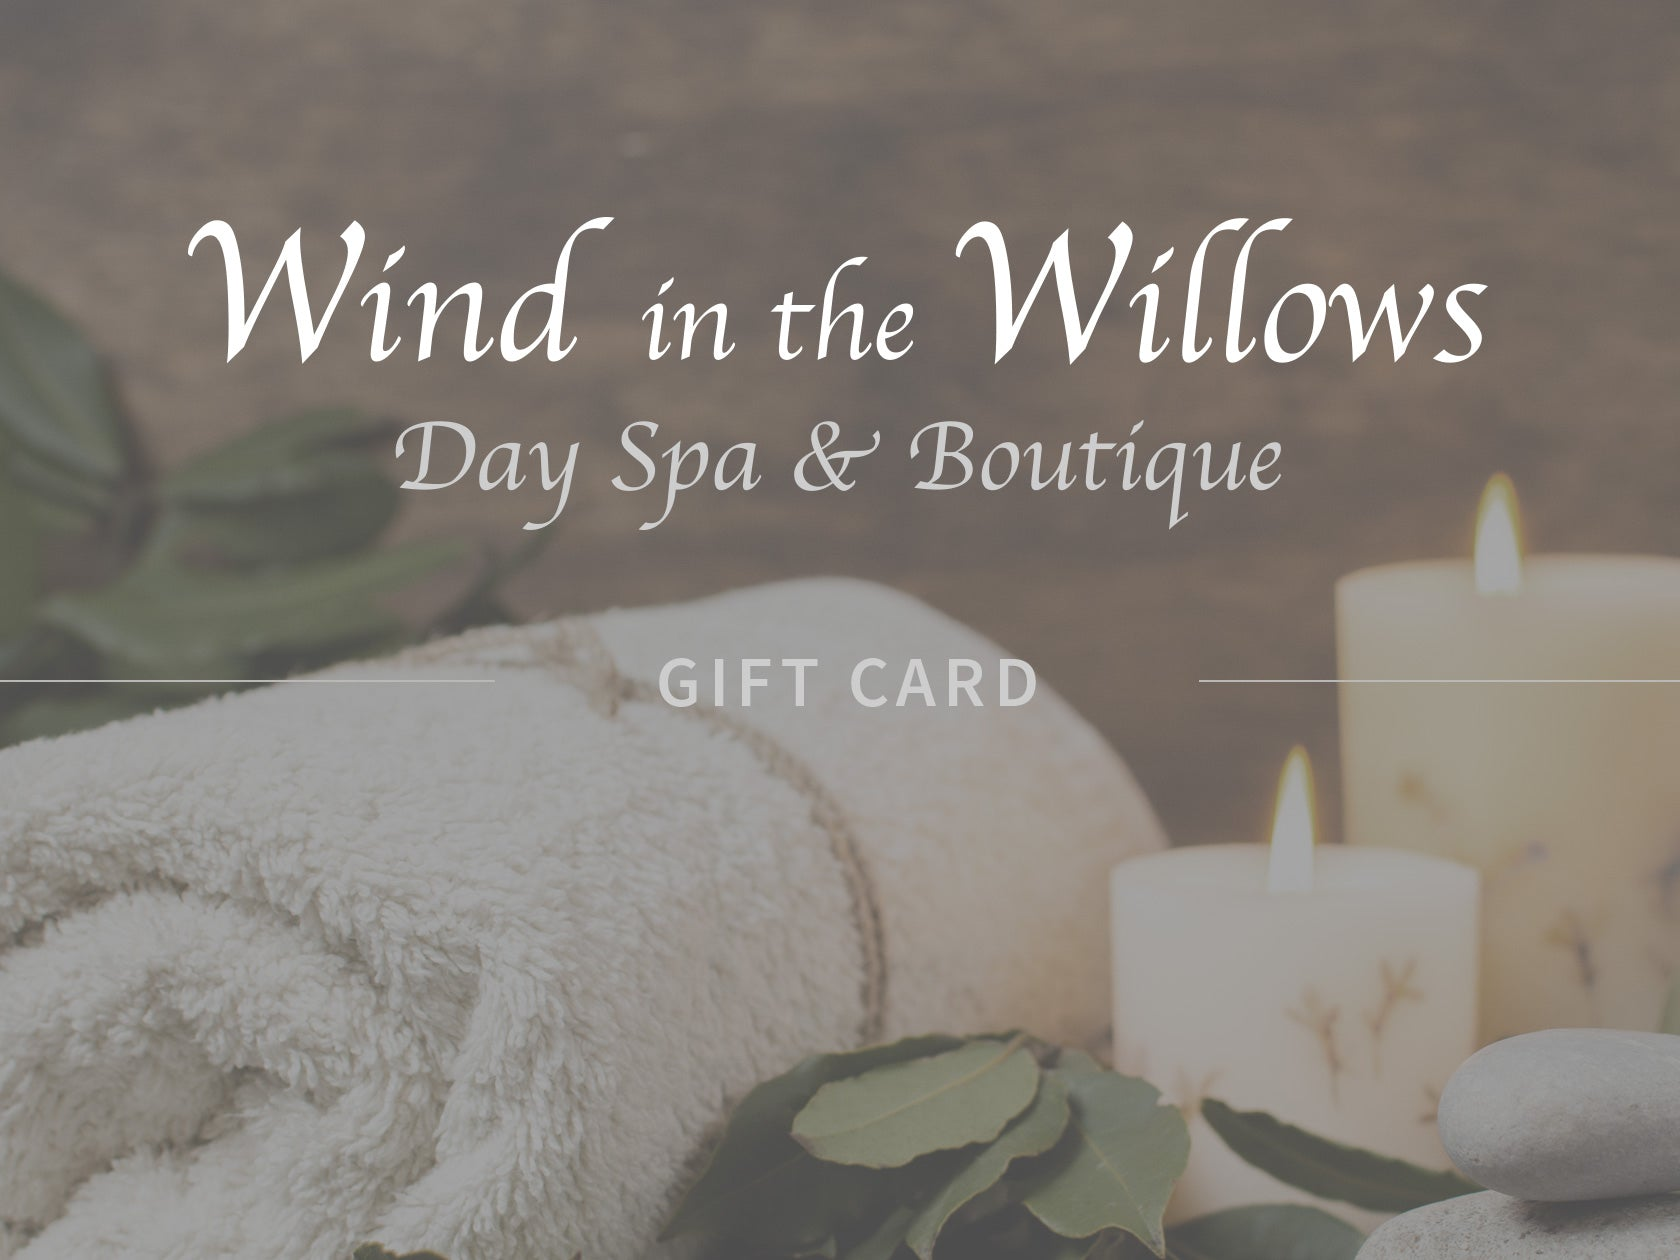 Spa & Boutique Gift Cards